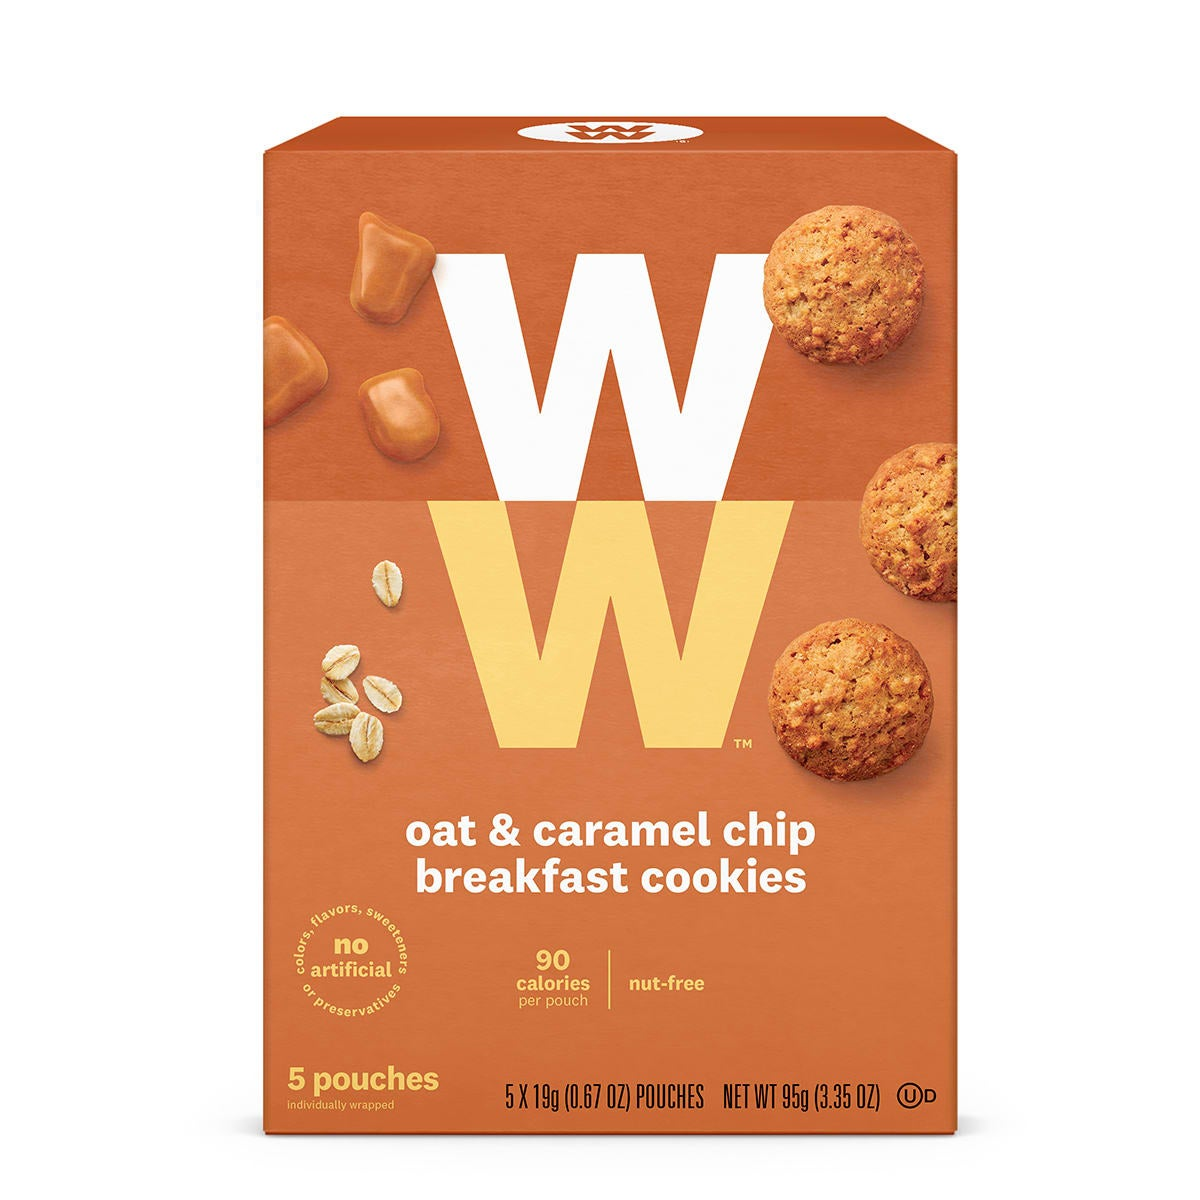 Oat and Caramel Chip Breakfast Cookies, front of vox, 5 pouches, 90 calories, nut free